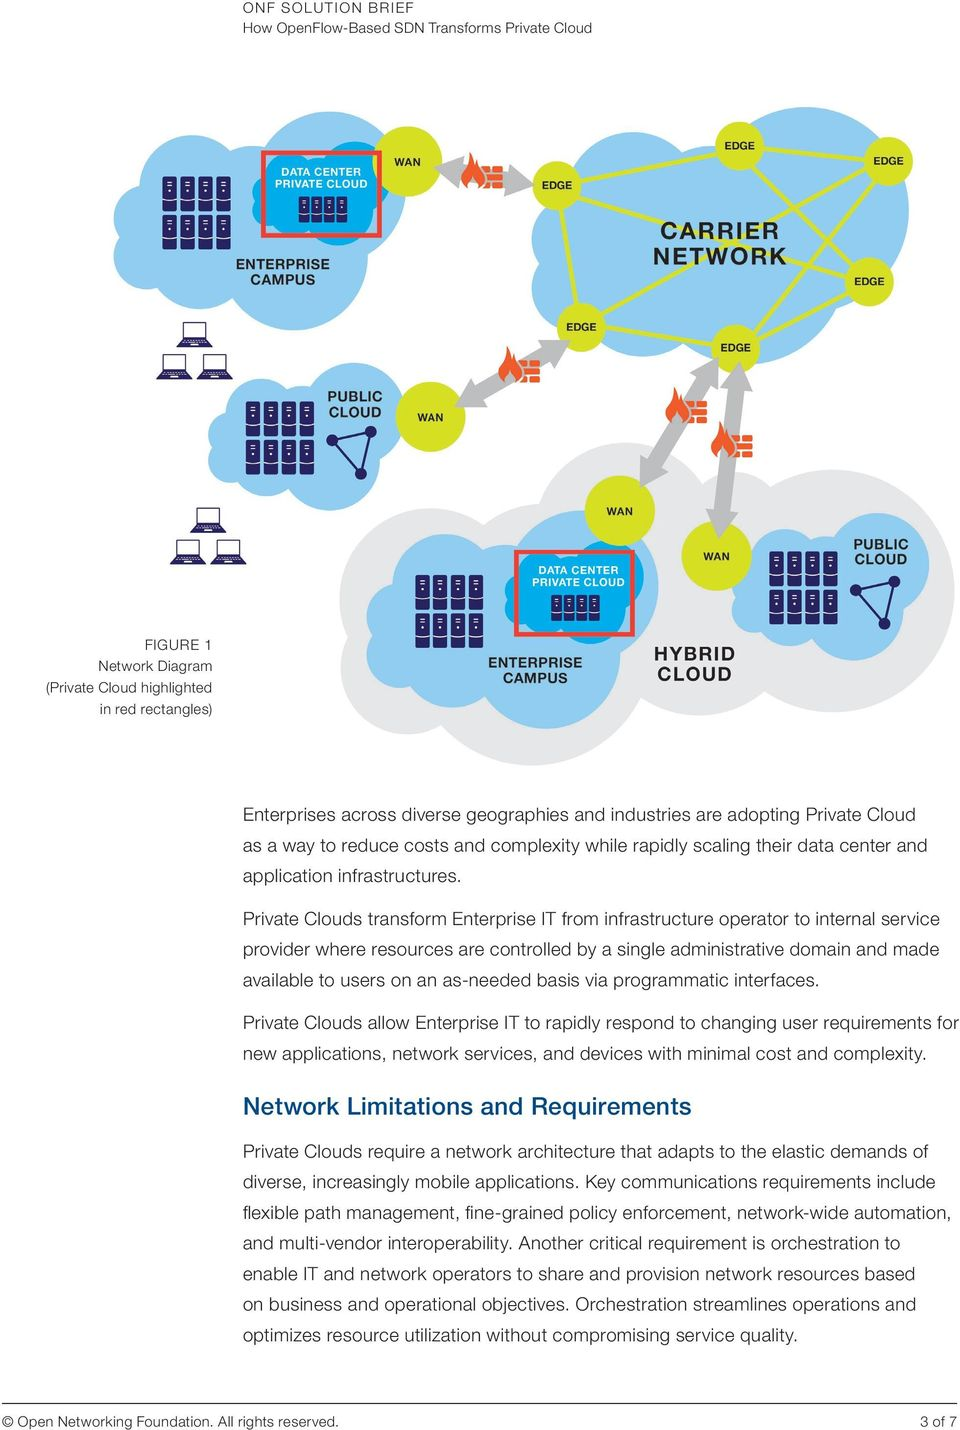 Private Clouds transform Enterprise IT from infrastructure operator to internal service provider where resources are controlled by a single administrative domain and made available to users on an